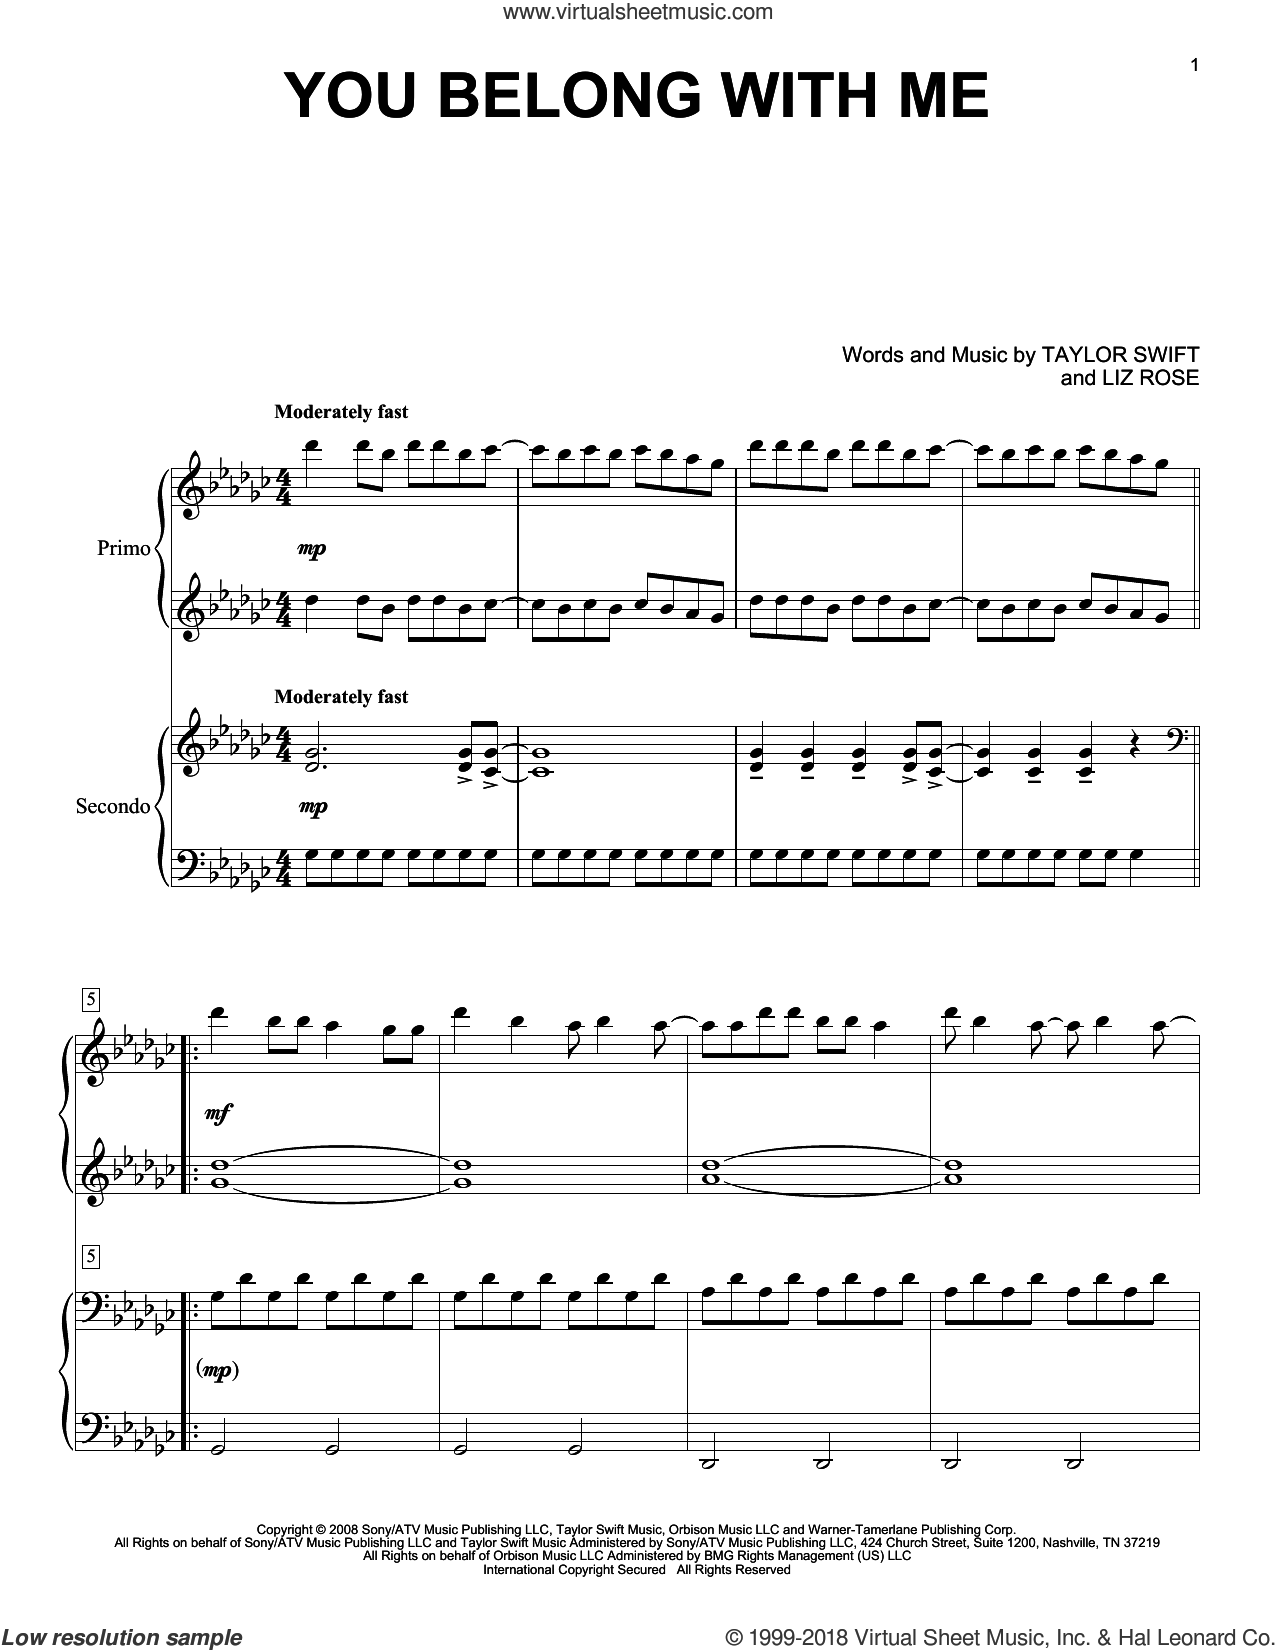 You Belong With Me sheet music for piano four hands (duets) by Liz Rose